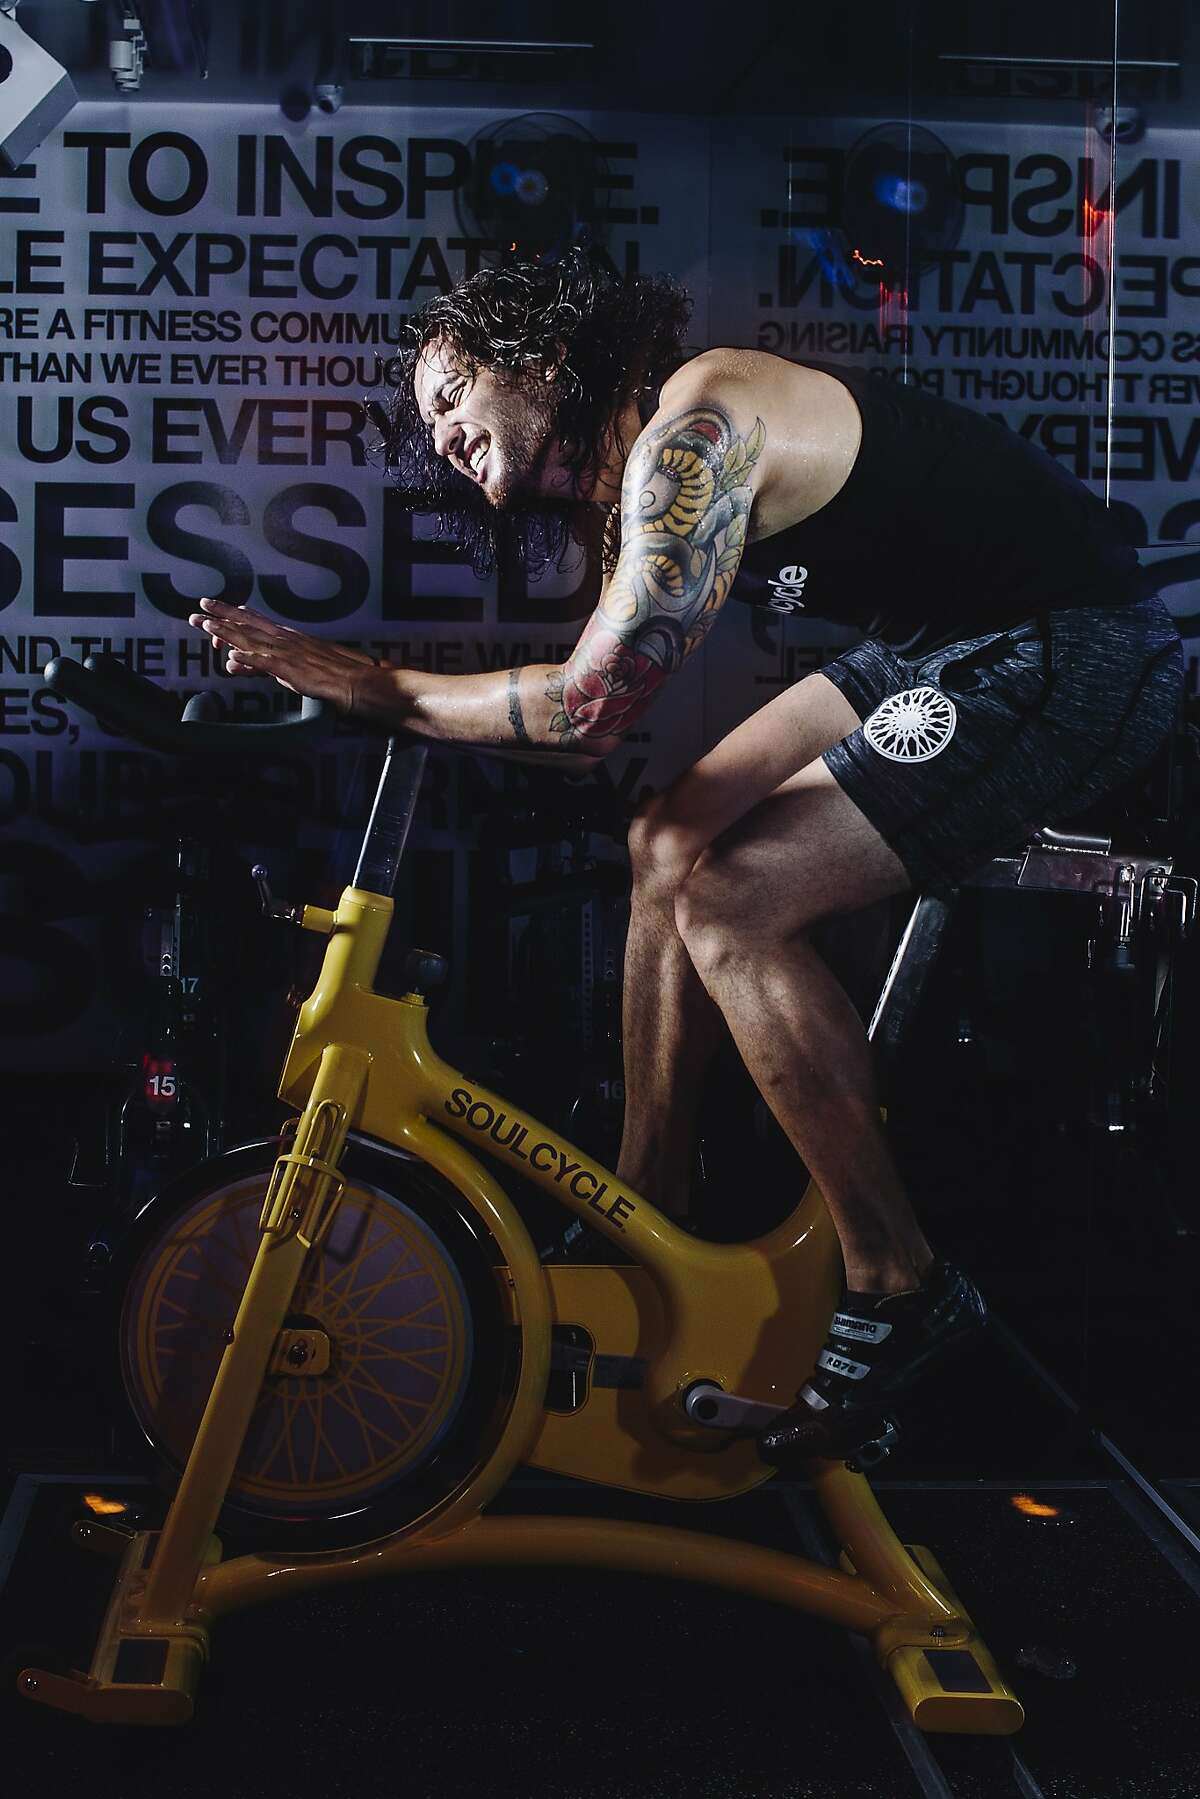 Ian McAndrews, a SoulCycle instructor, spins on a stationary bike at the company's new Castro location in San Francisco, Calif. on Friday, July 10, 2015.